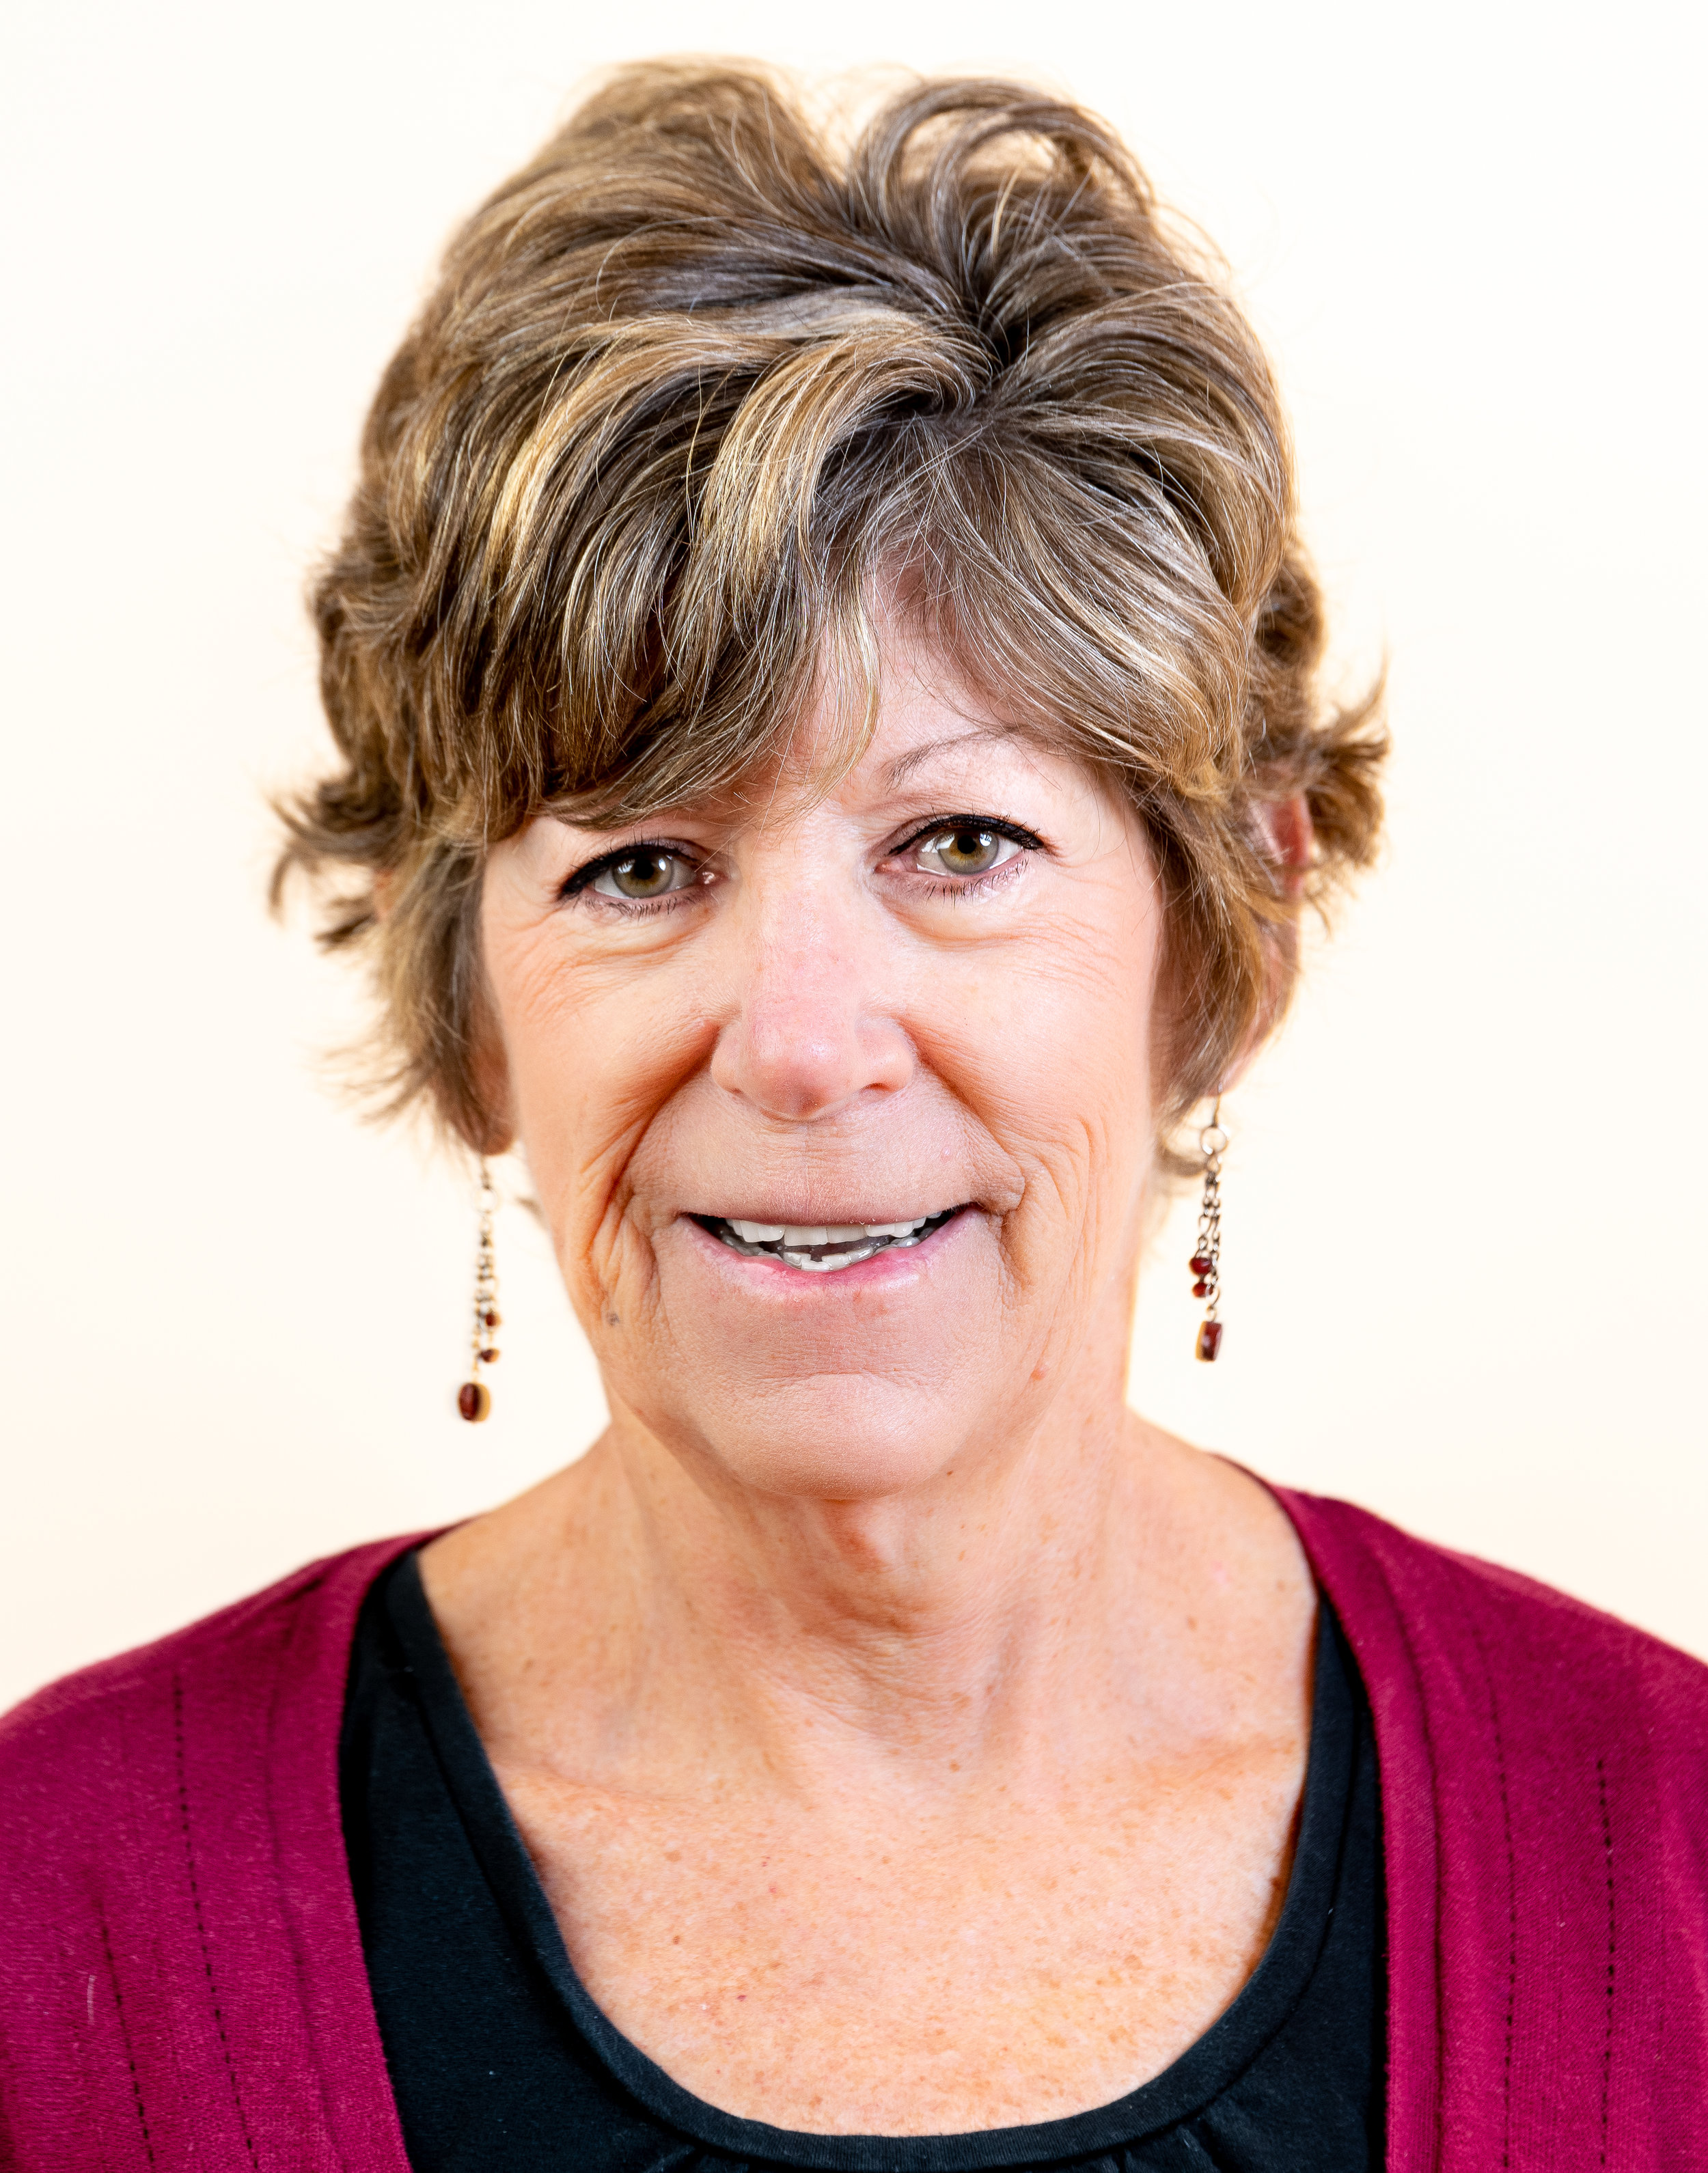 Ginny Zellmer, Education Manager